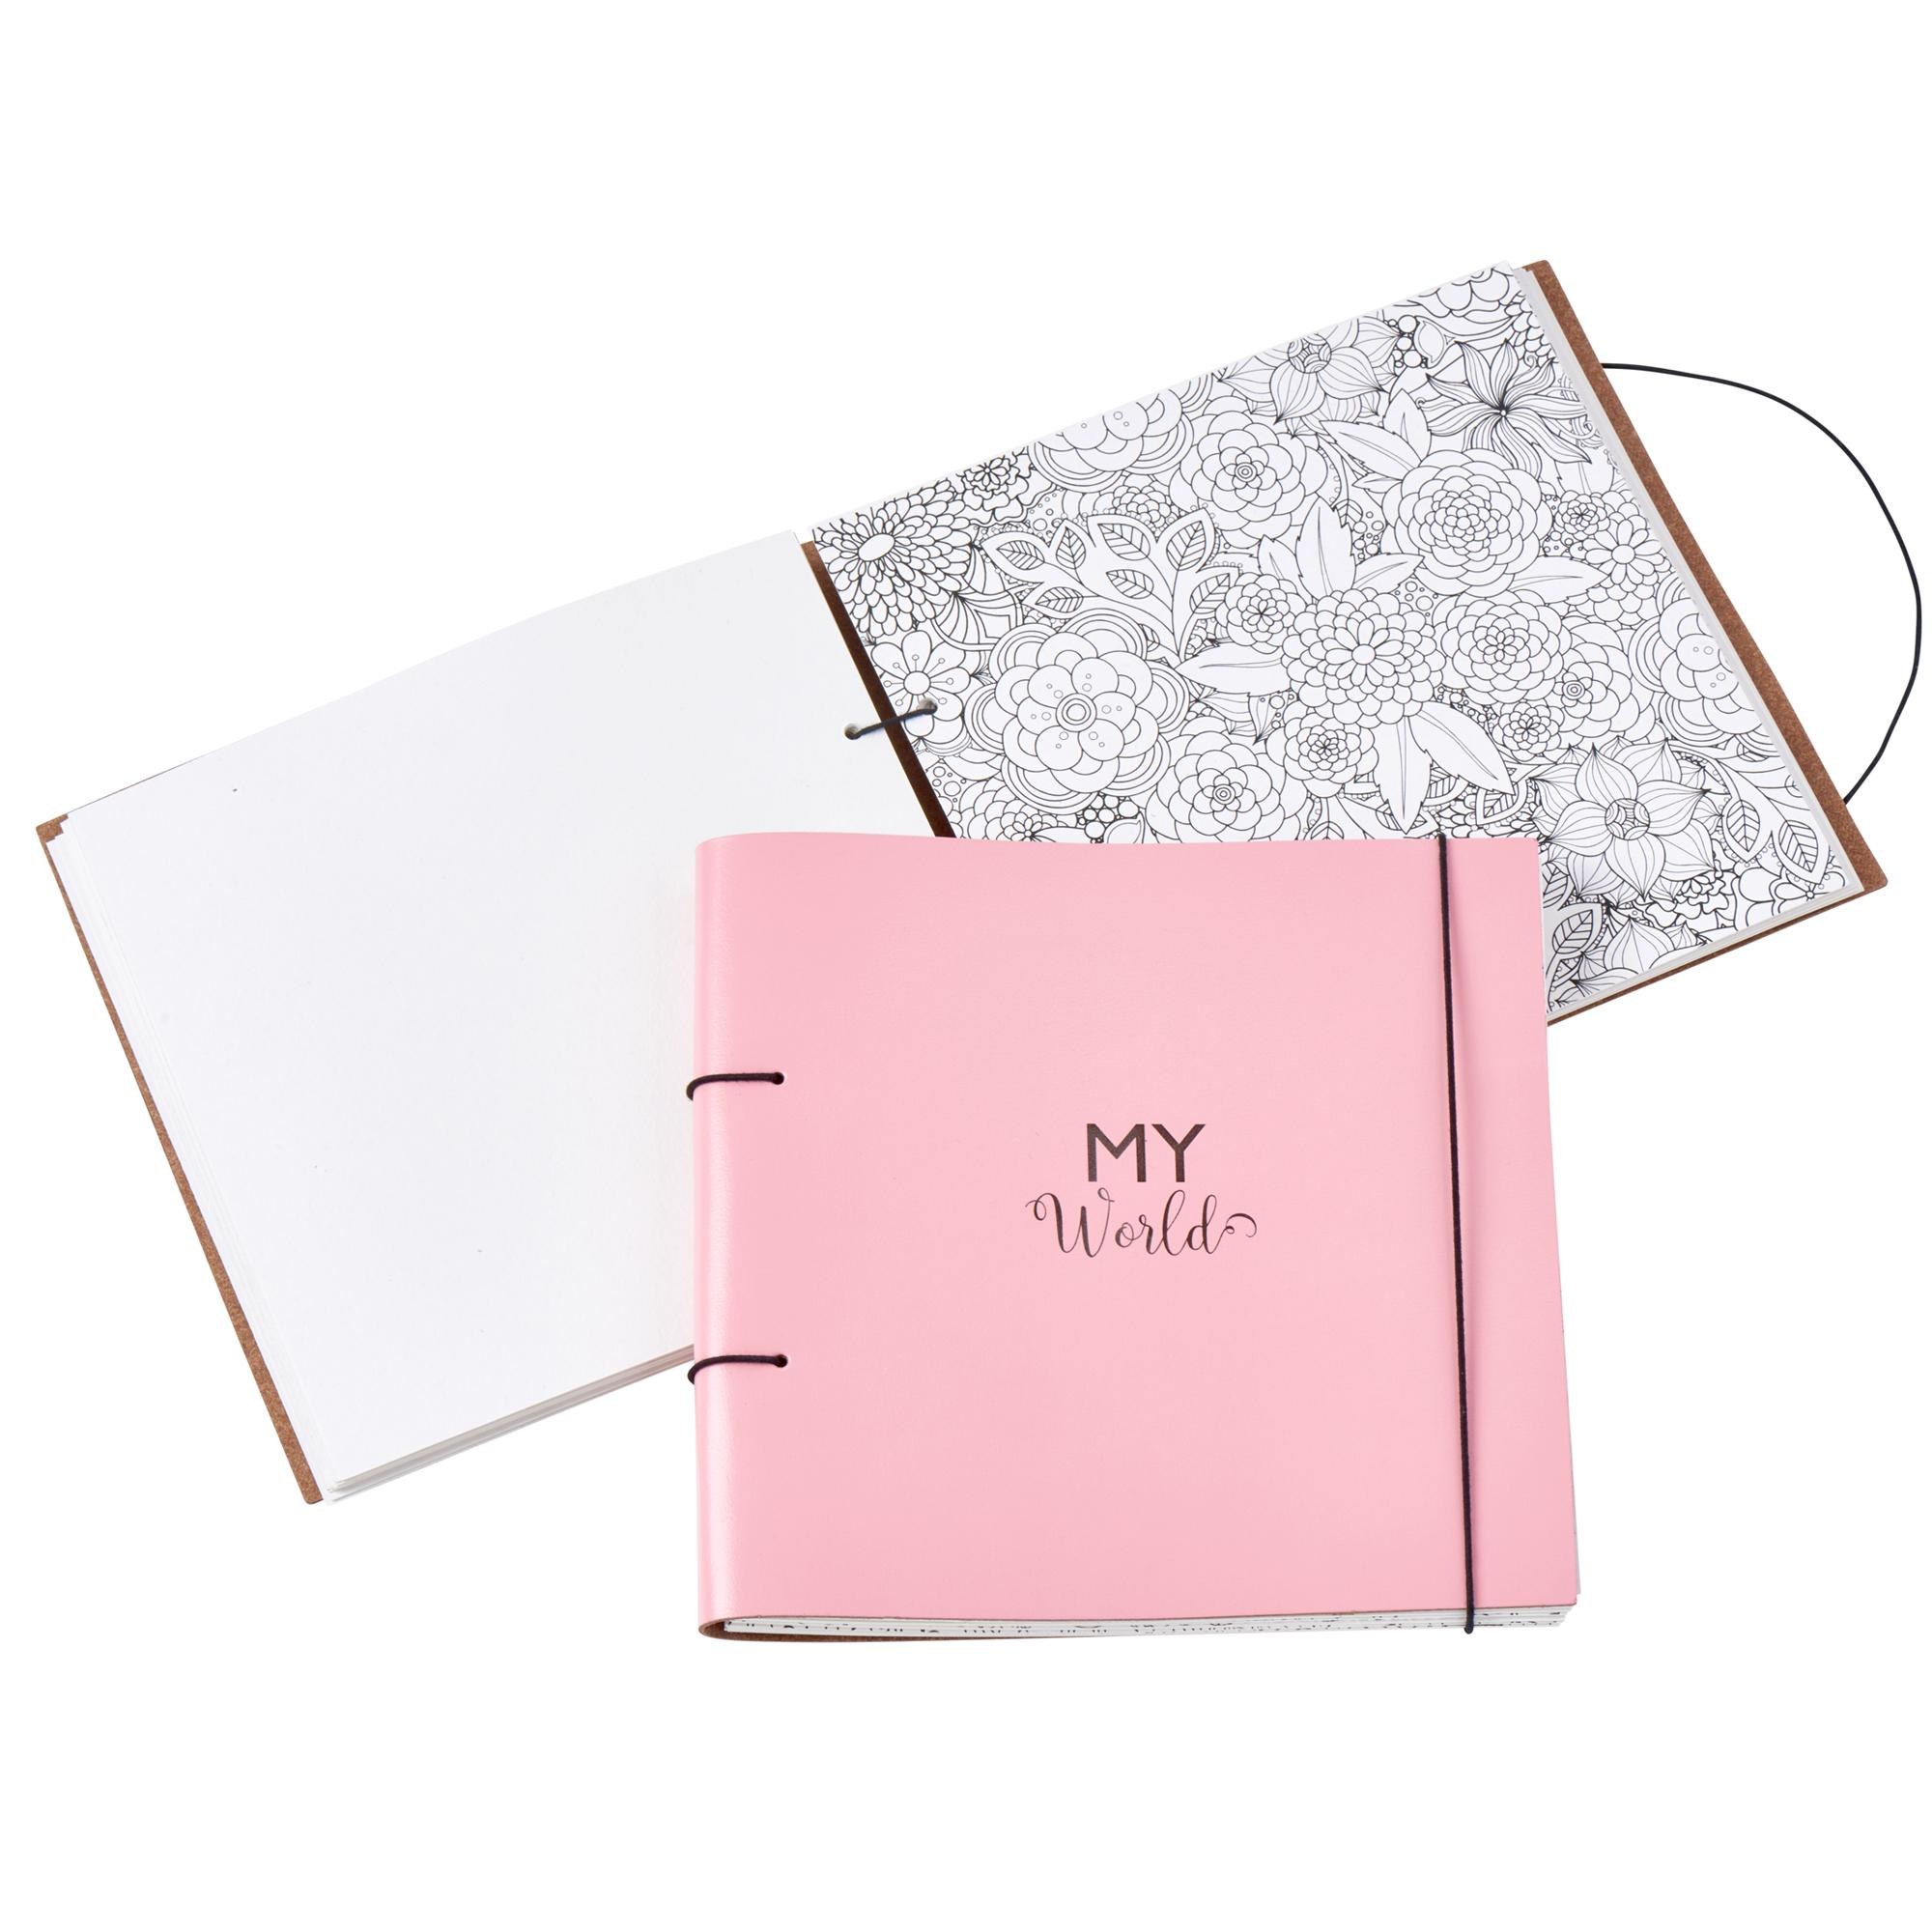 Recycled Leather Planner And Scrapbook In Blossom Pink Cancer